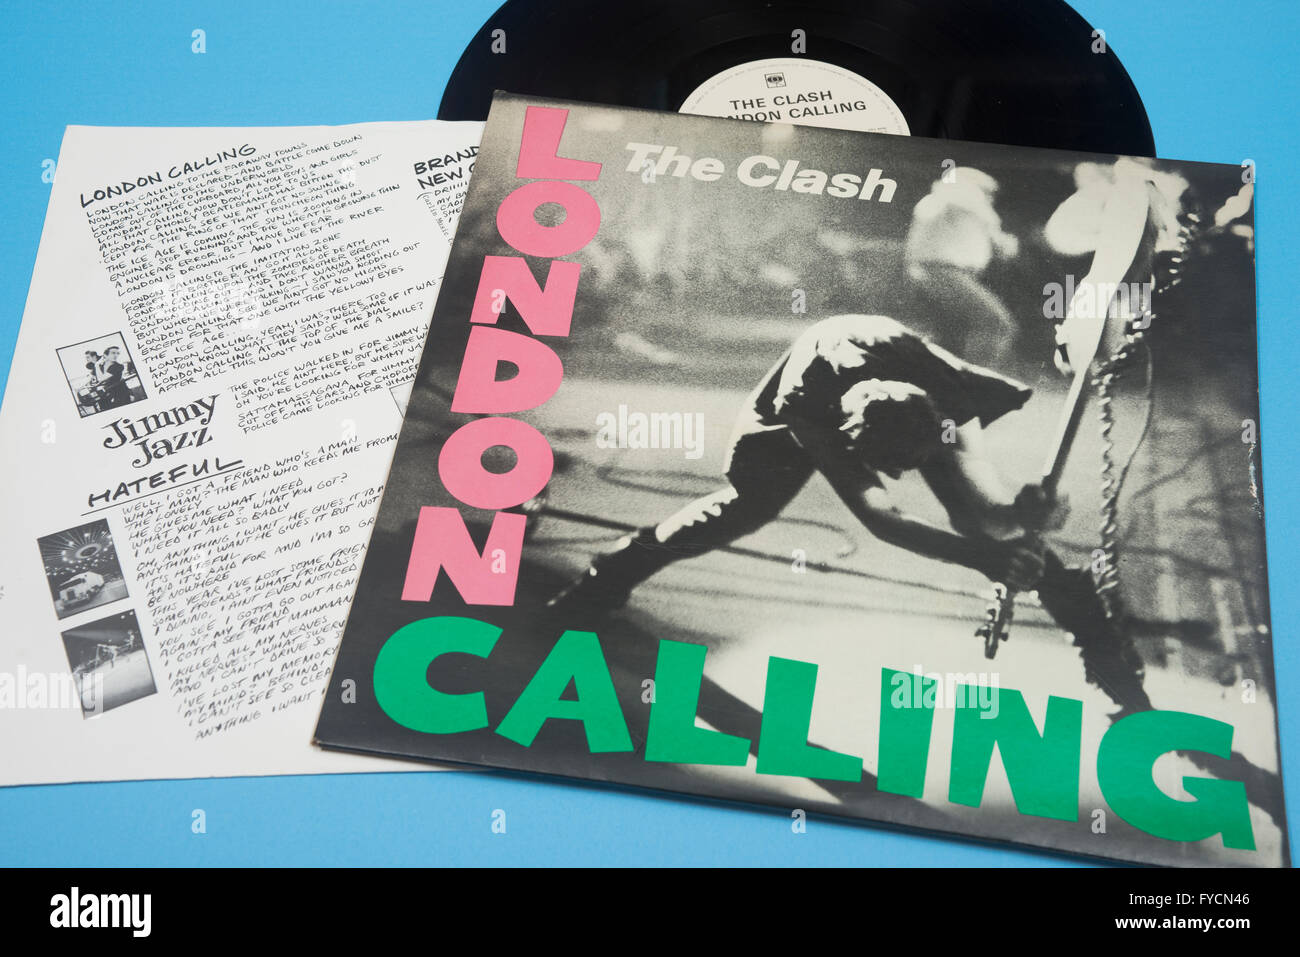 London Calling album on vinyl by The Clash with original sleeve artwork - Stock Image